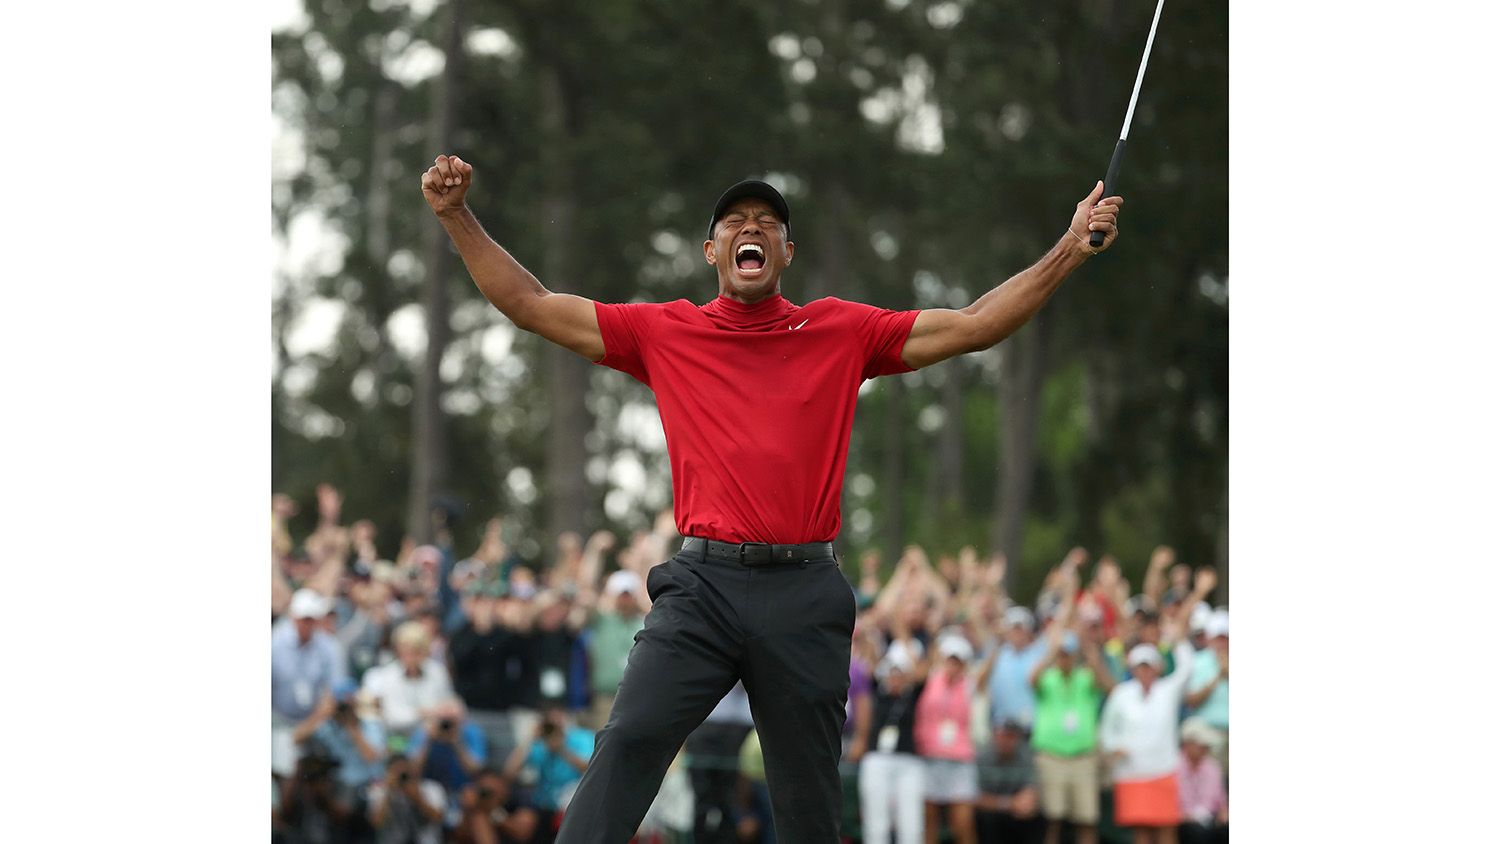 Tiger Woods after winning the 2019 Masters — an example of masterful golf photography.